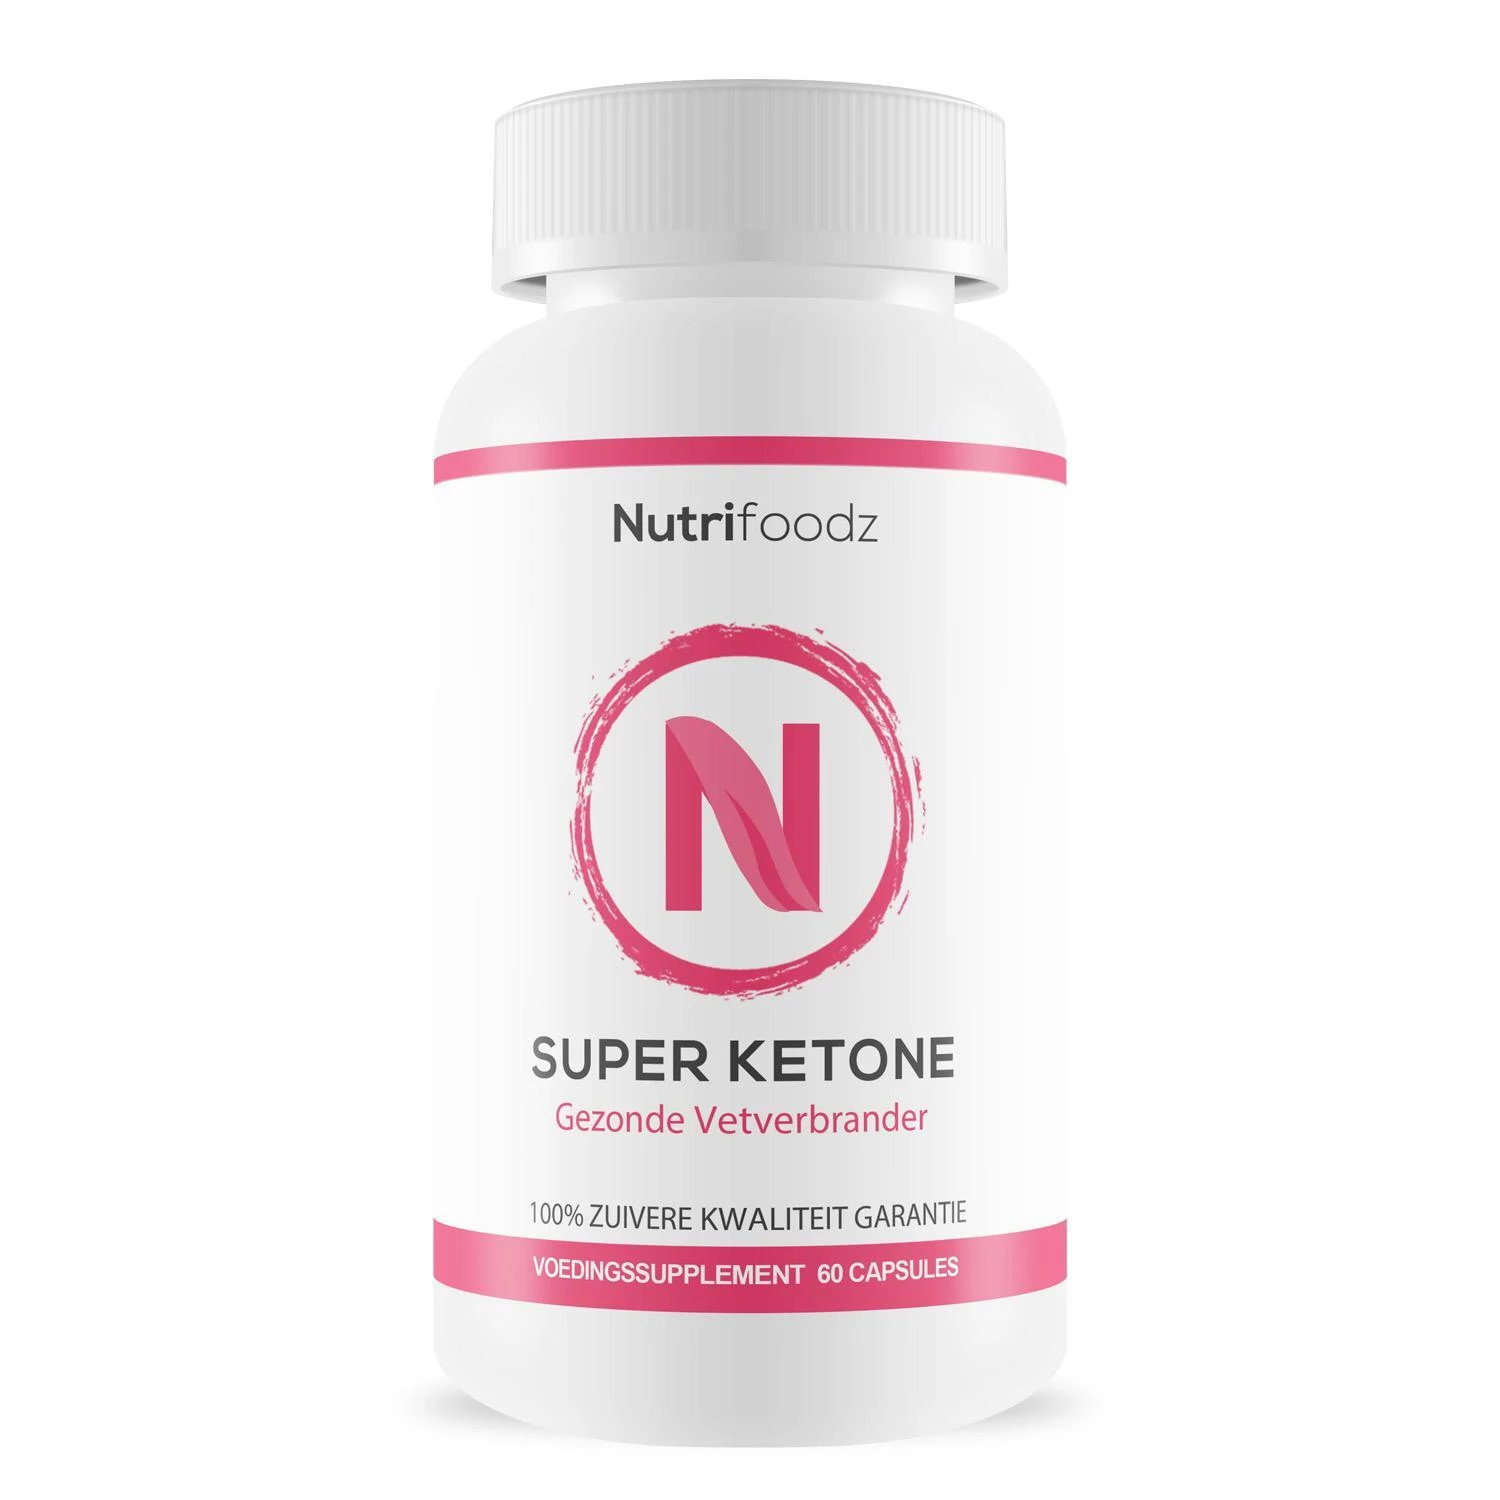 SUPER KETONE 6 pack (20% korting) nutrition